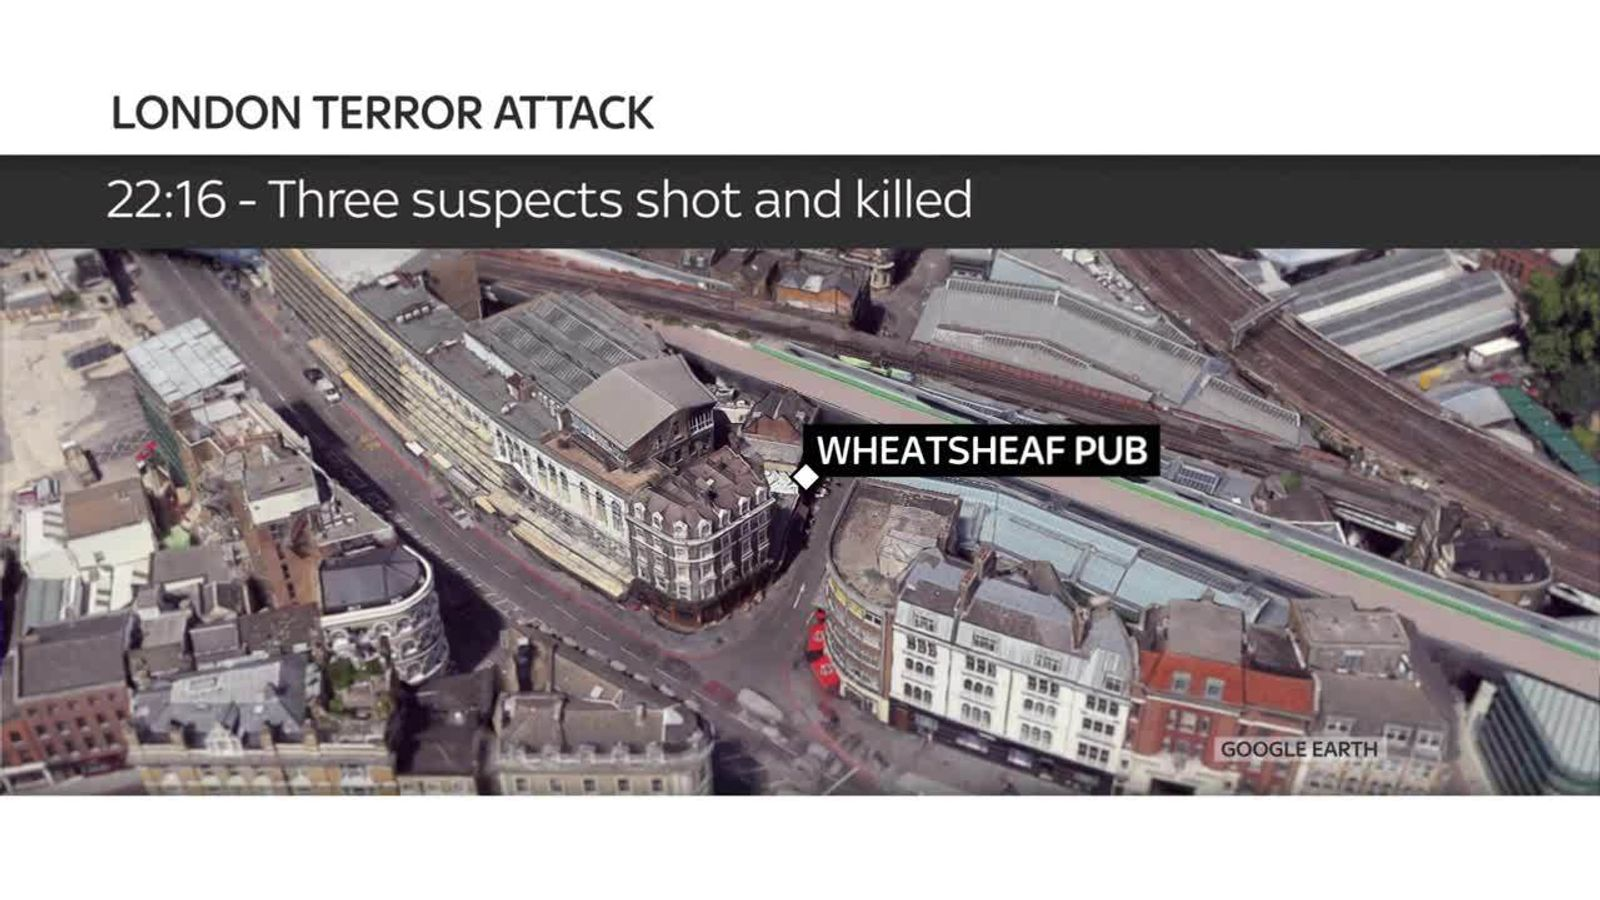 What we do and don't know about the London attack